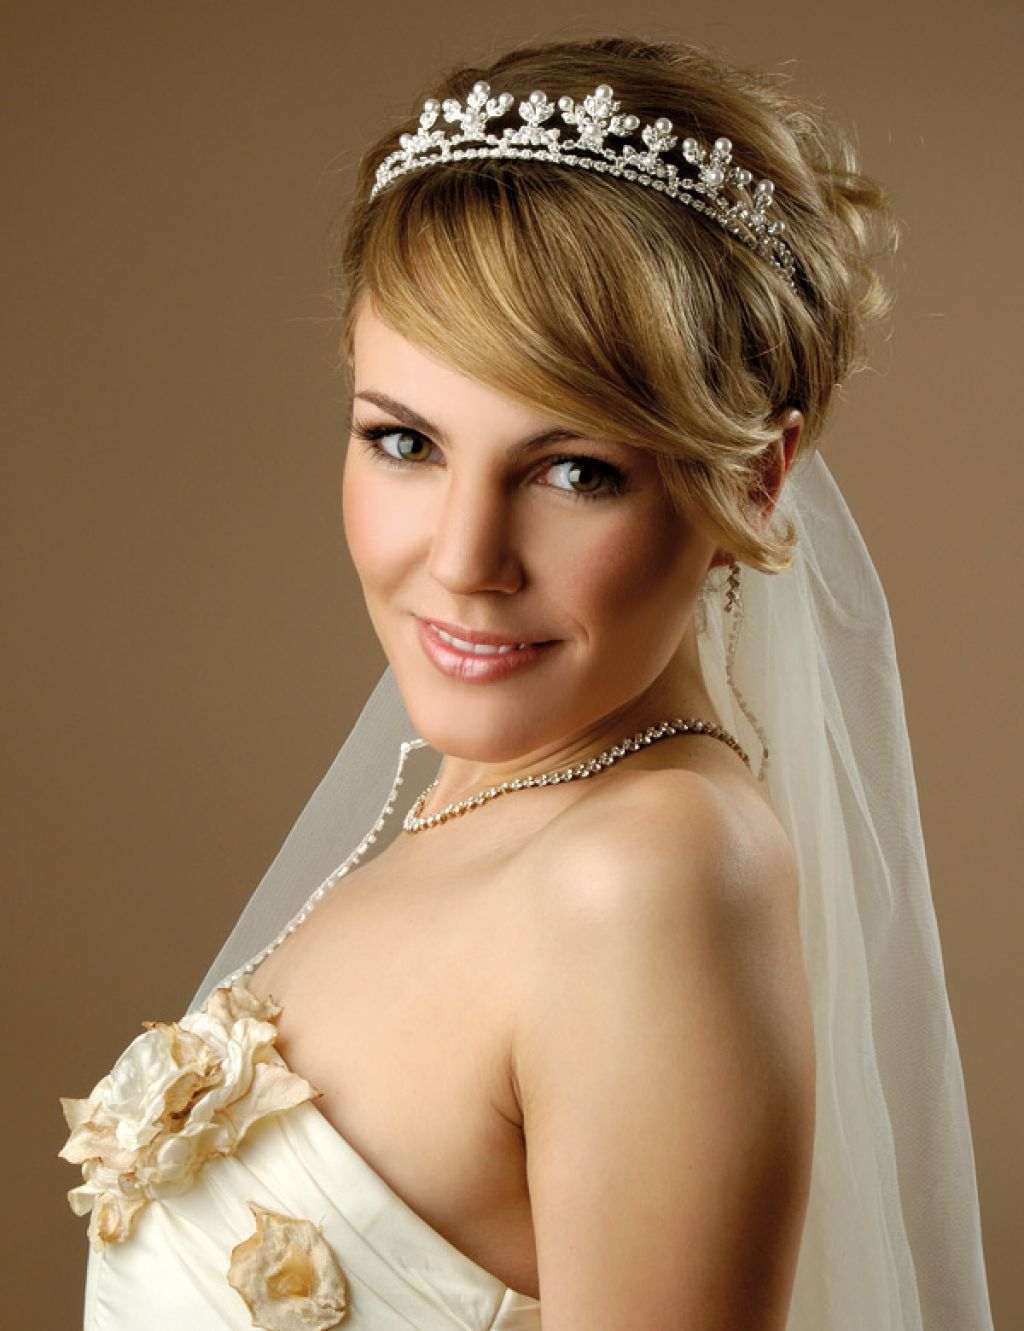 Short Wedding Hairstyles With Veil – Hairstyle For Women & Man In Hairstyles For Short Hair For Wedding (View 23 of 25)